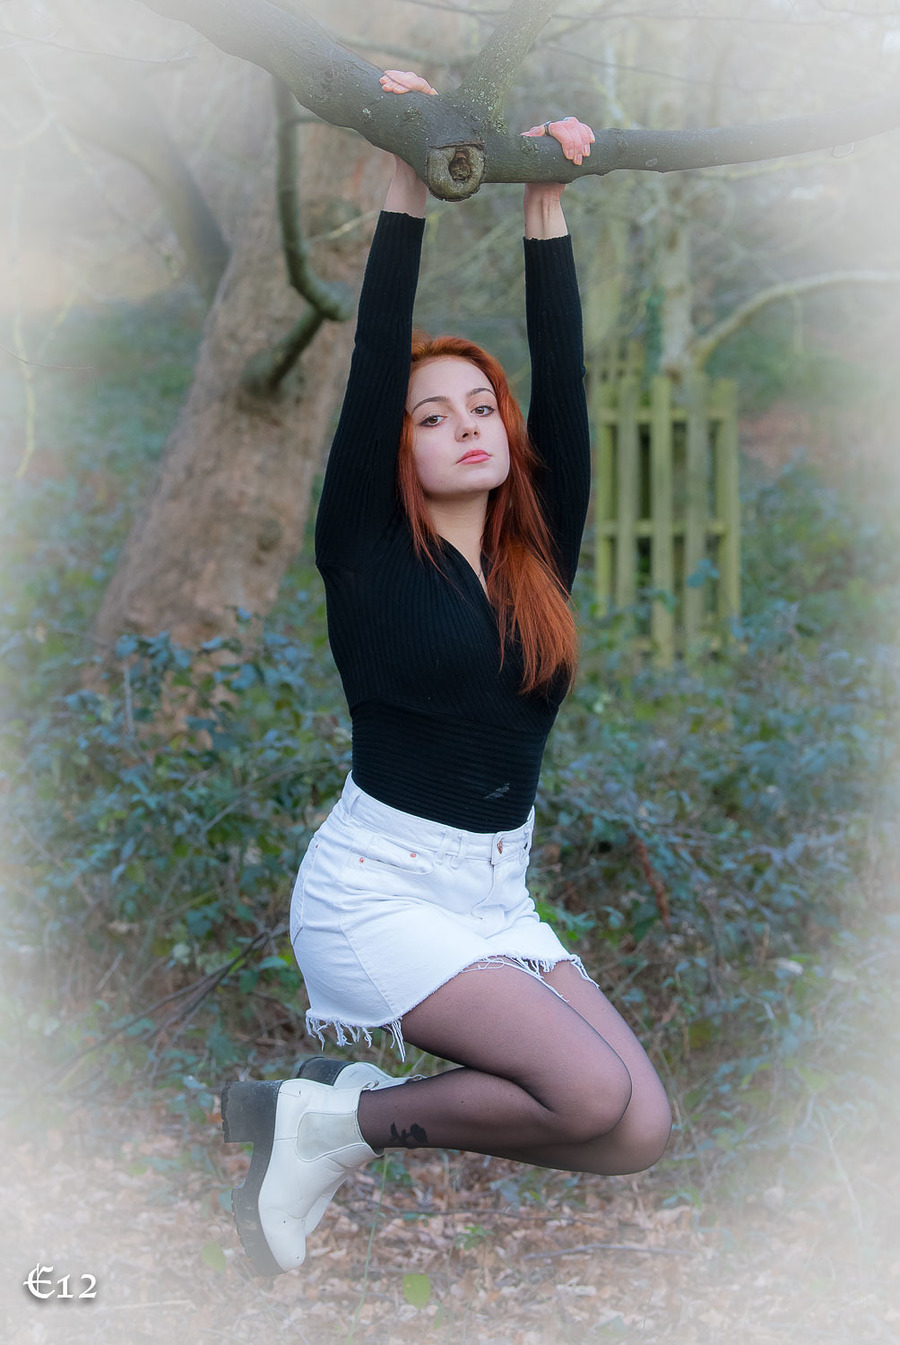 The Enchanted Garden / Photography by E12, Model Rosedame / Uploaded 22nd January 2021 @ 06:42 AM